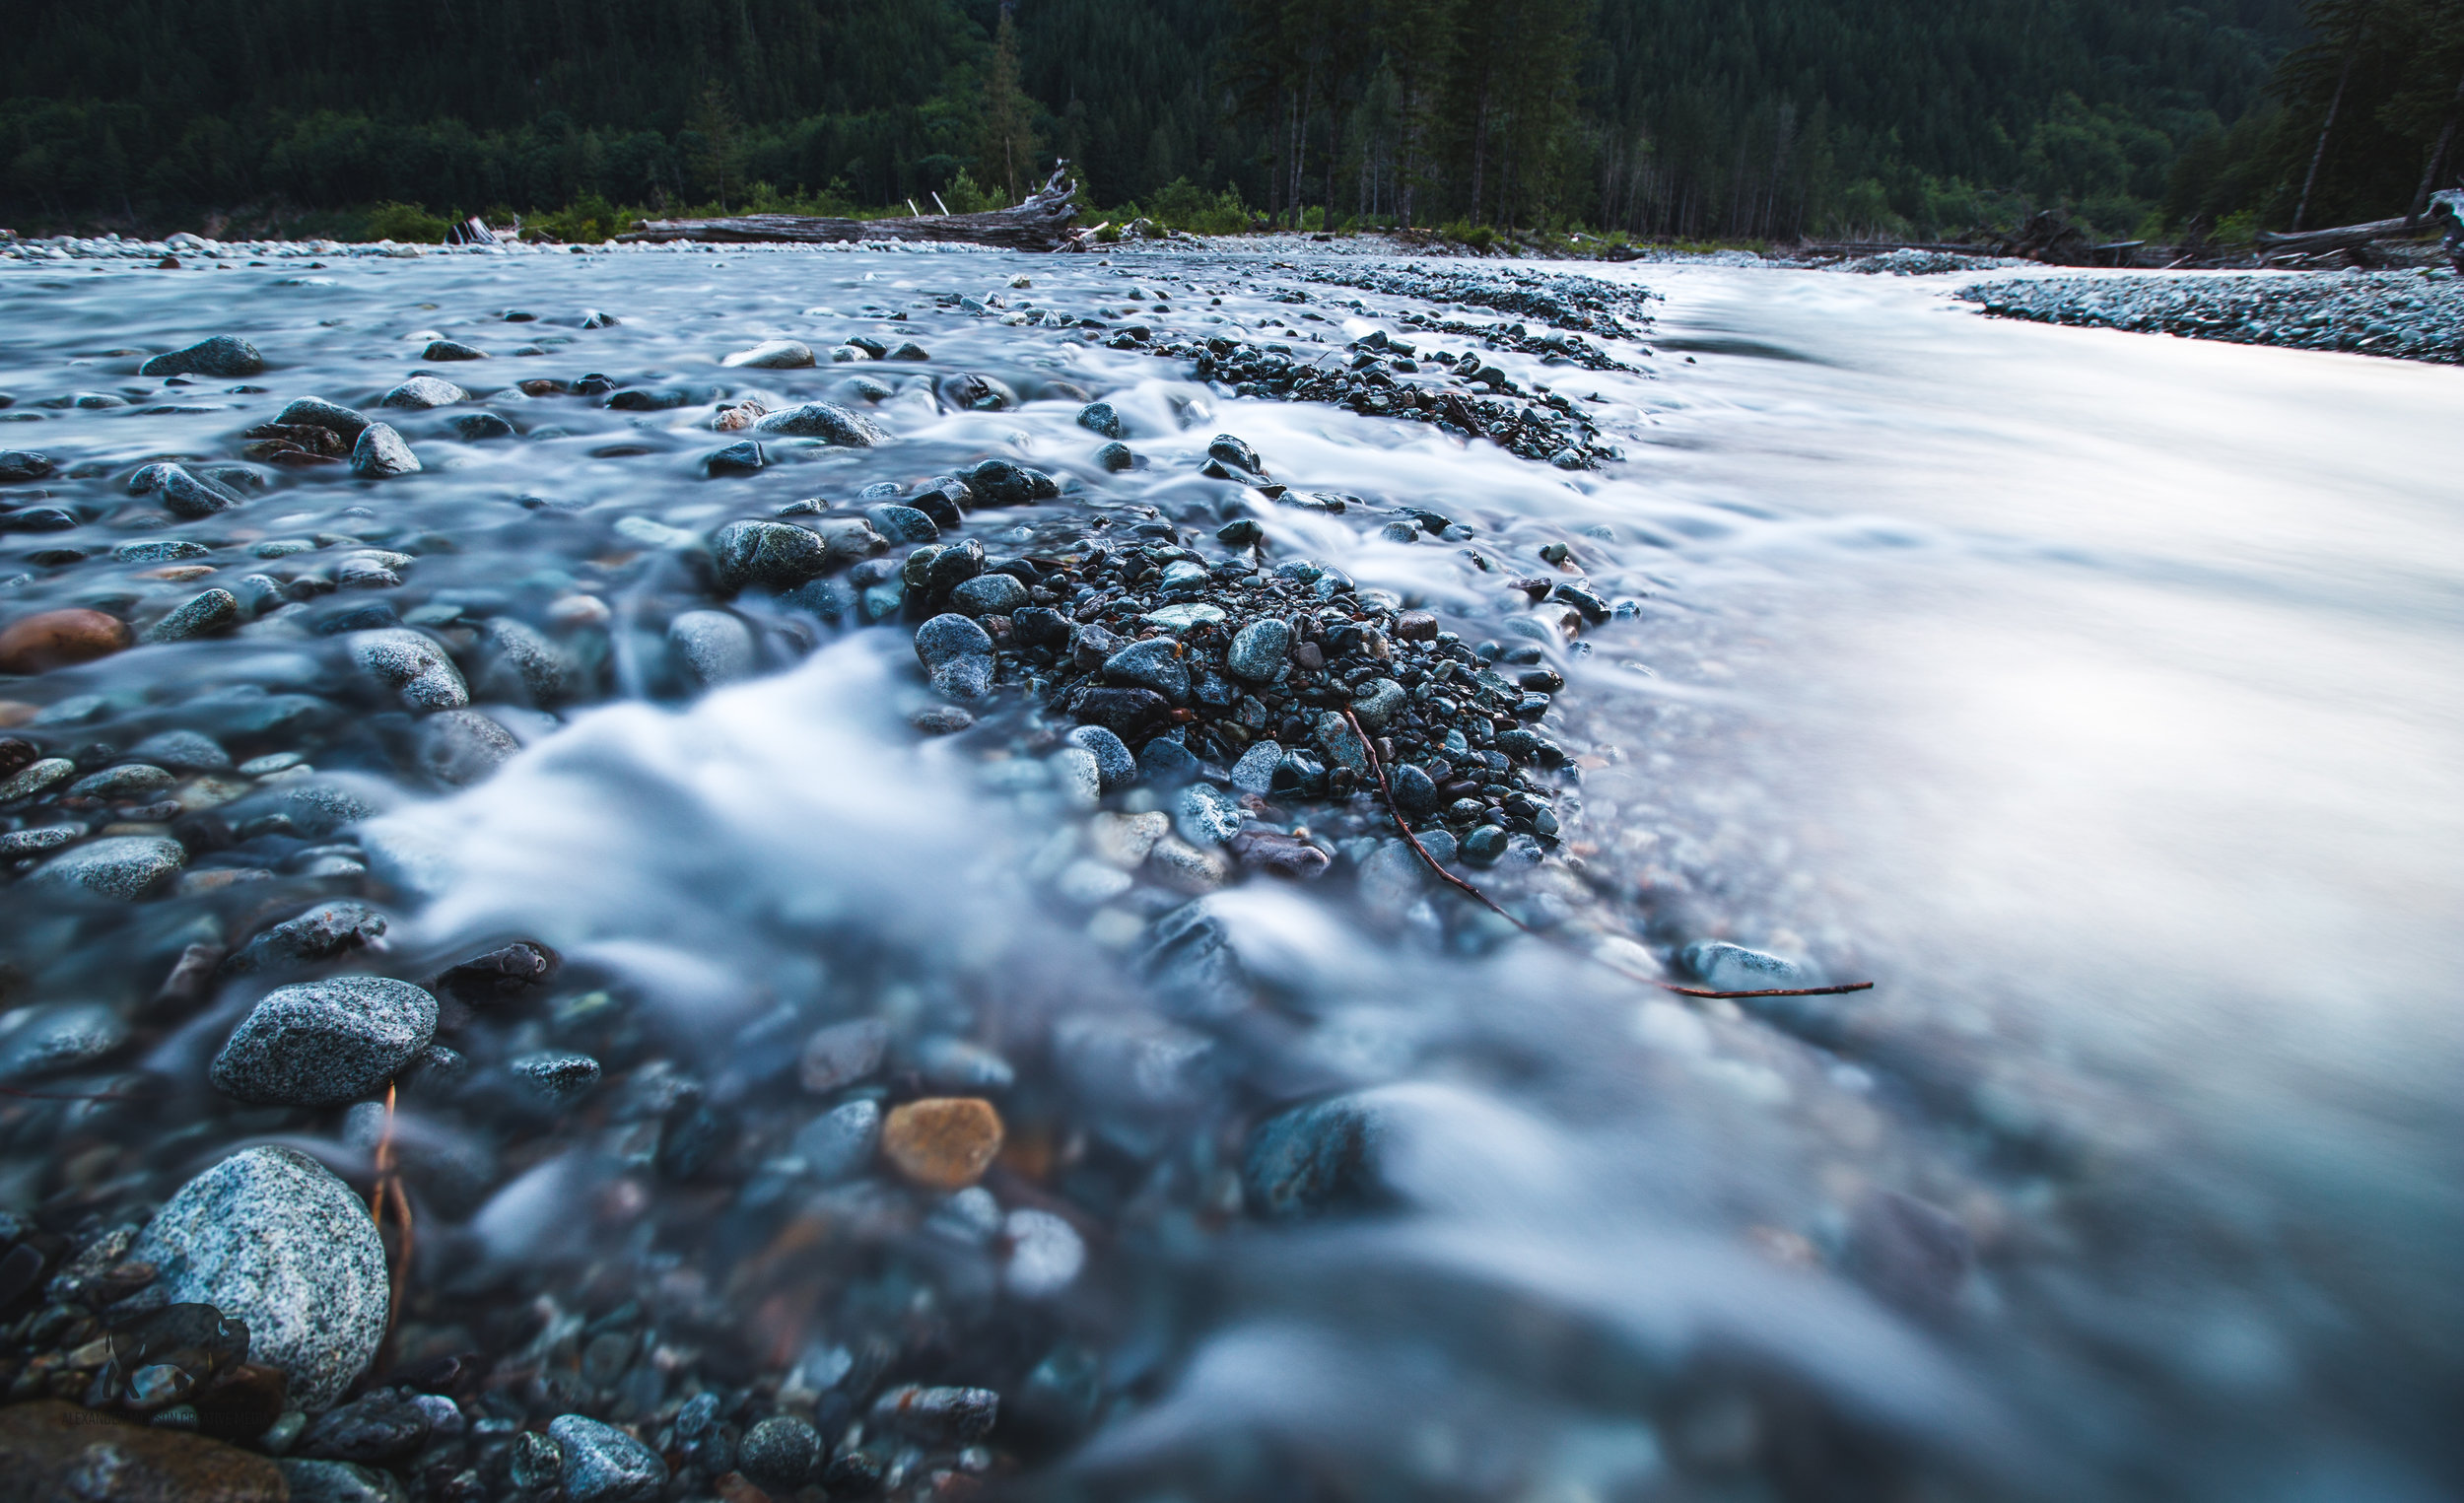 Standing in this water while shooting long exposures it the polar opposite to the heat we experienced during sunlight hours.